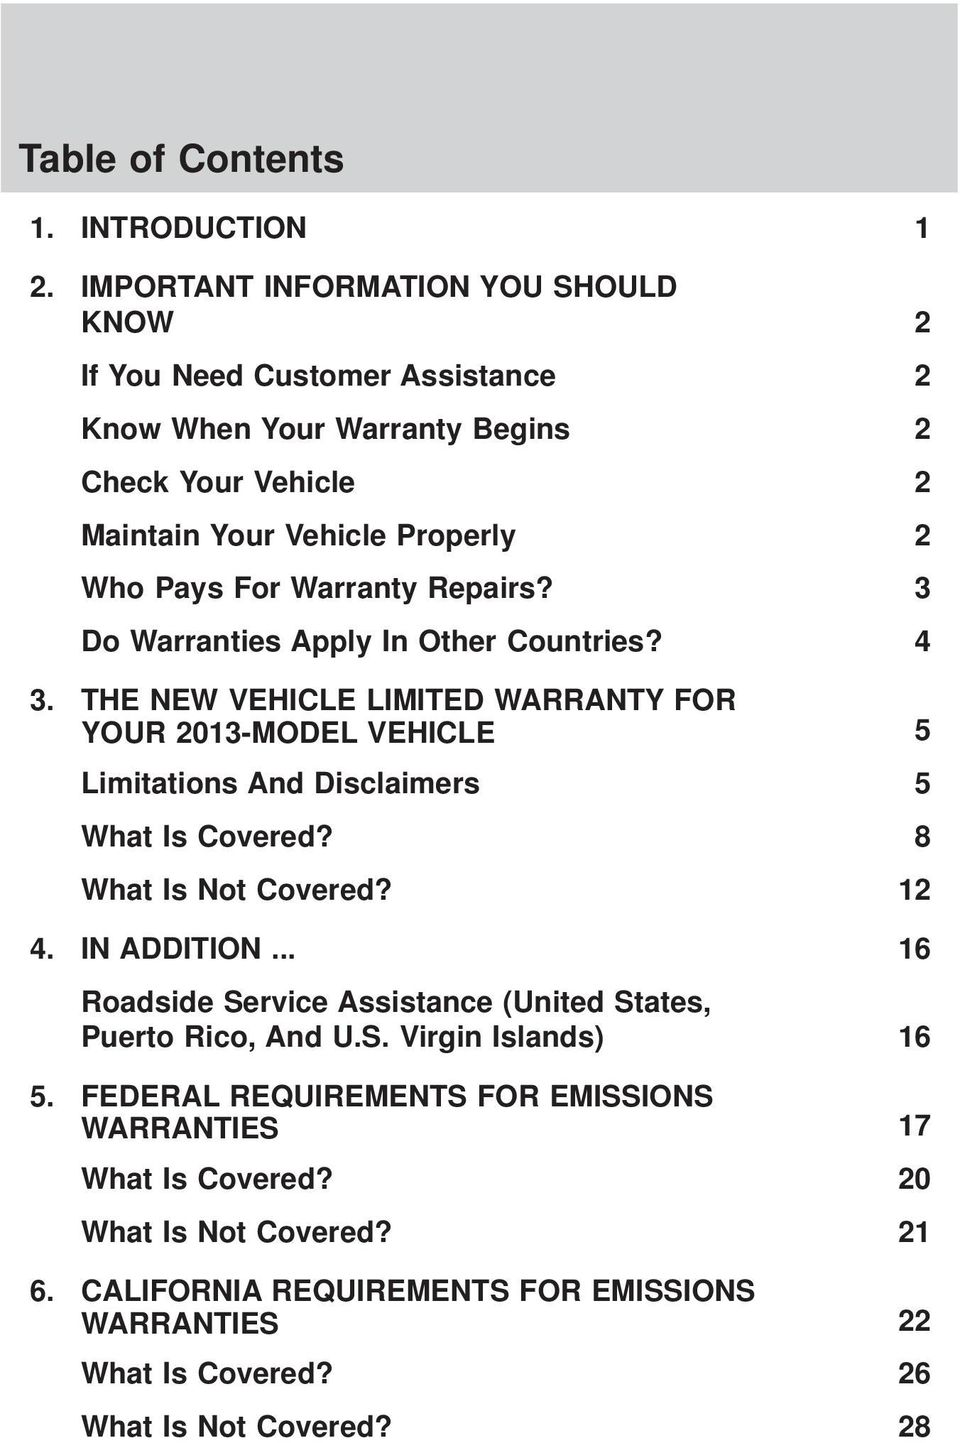 Warranty Repairs? 3 Do Warranties Apply In Other Countries? 4 3. THE NEW VEHICLE LIMITED WARRANTY FOR YOUR 2013-MODEL VEHICLE 5 Limitations And Disclaimers 5 What Is Covered?